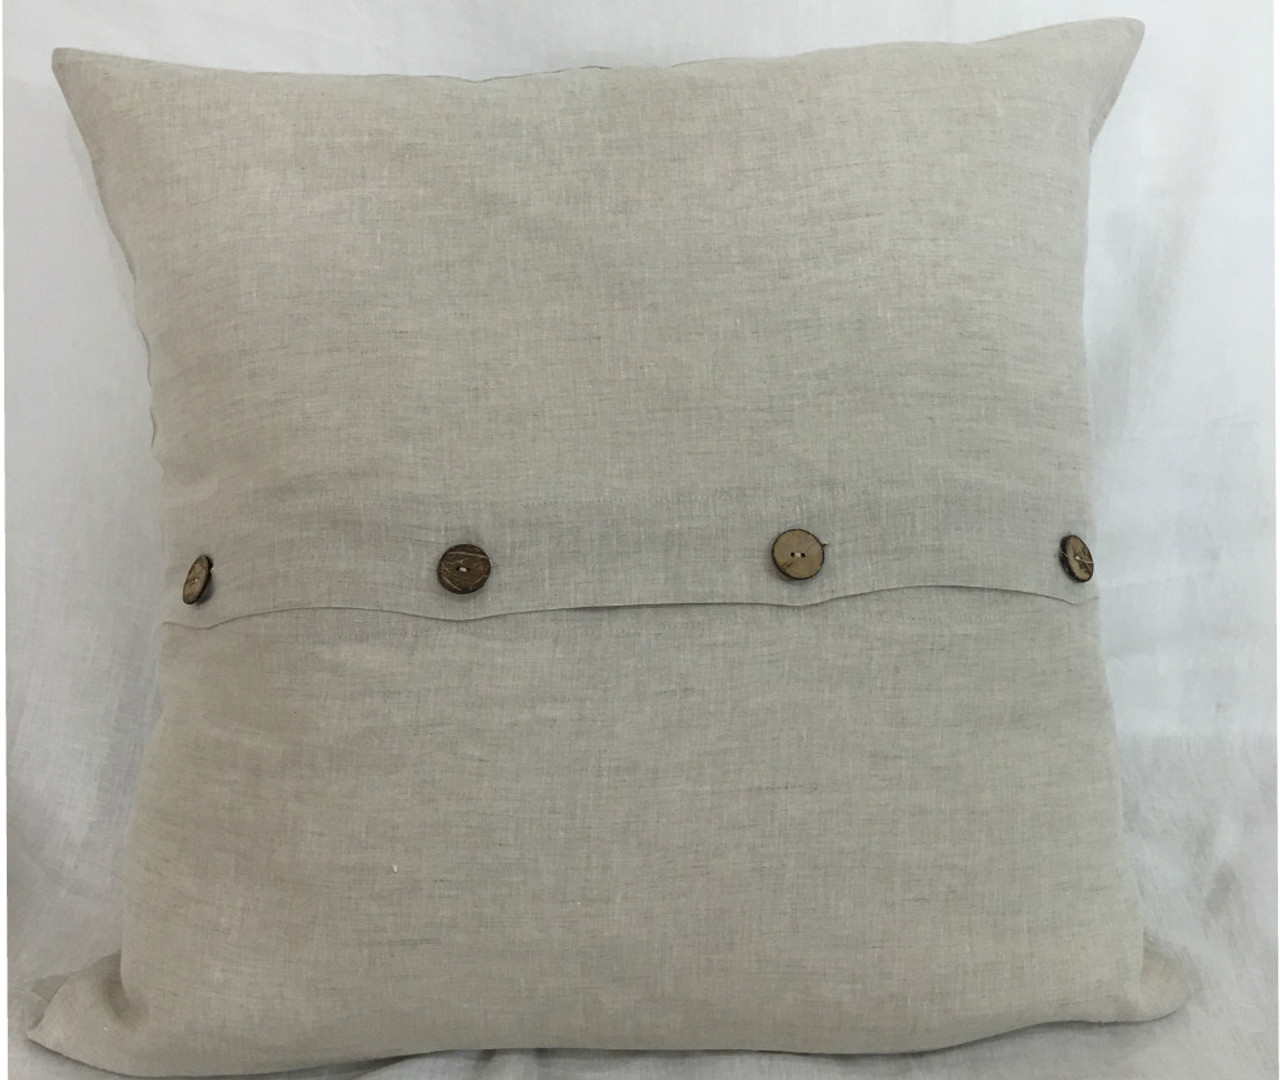 Natural Linen Euro Sham Covers With Wooden Buttons 16x16 To 30x30 All Sizes Handcrafted By Superiorcustomlinens Com